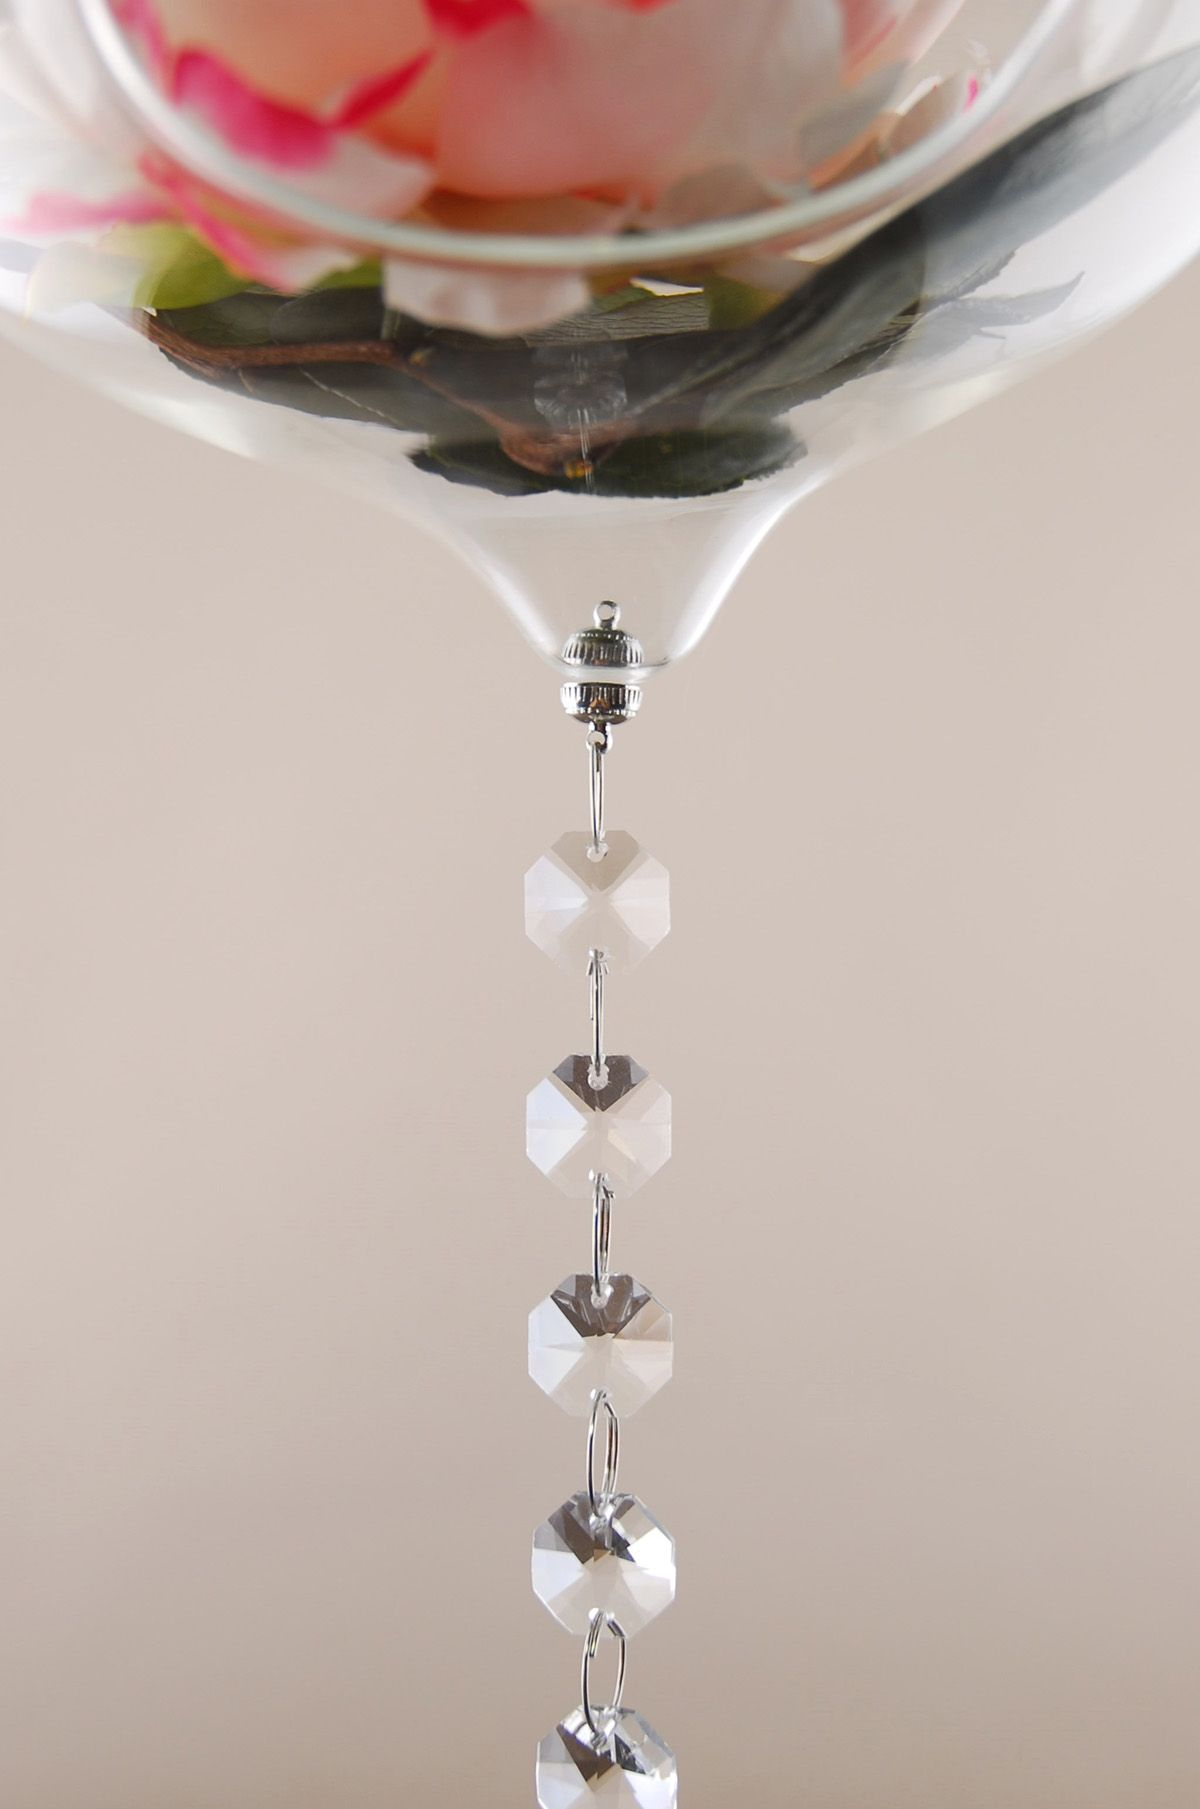 Tiny chandelier magnets for hanging terrariums between crystal chandelier magnets 6 pairs aloadofball Image collections